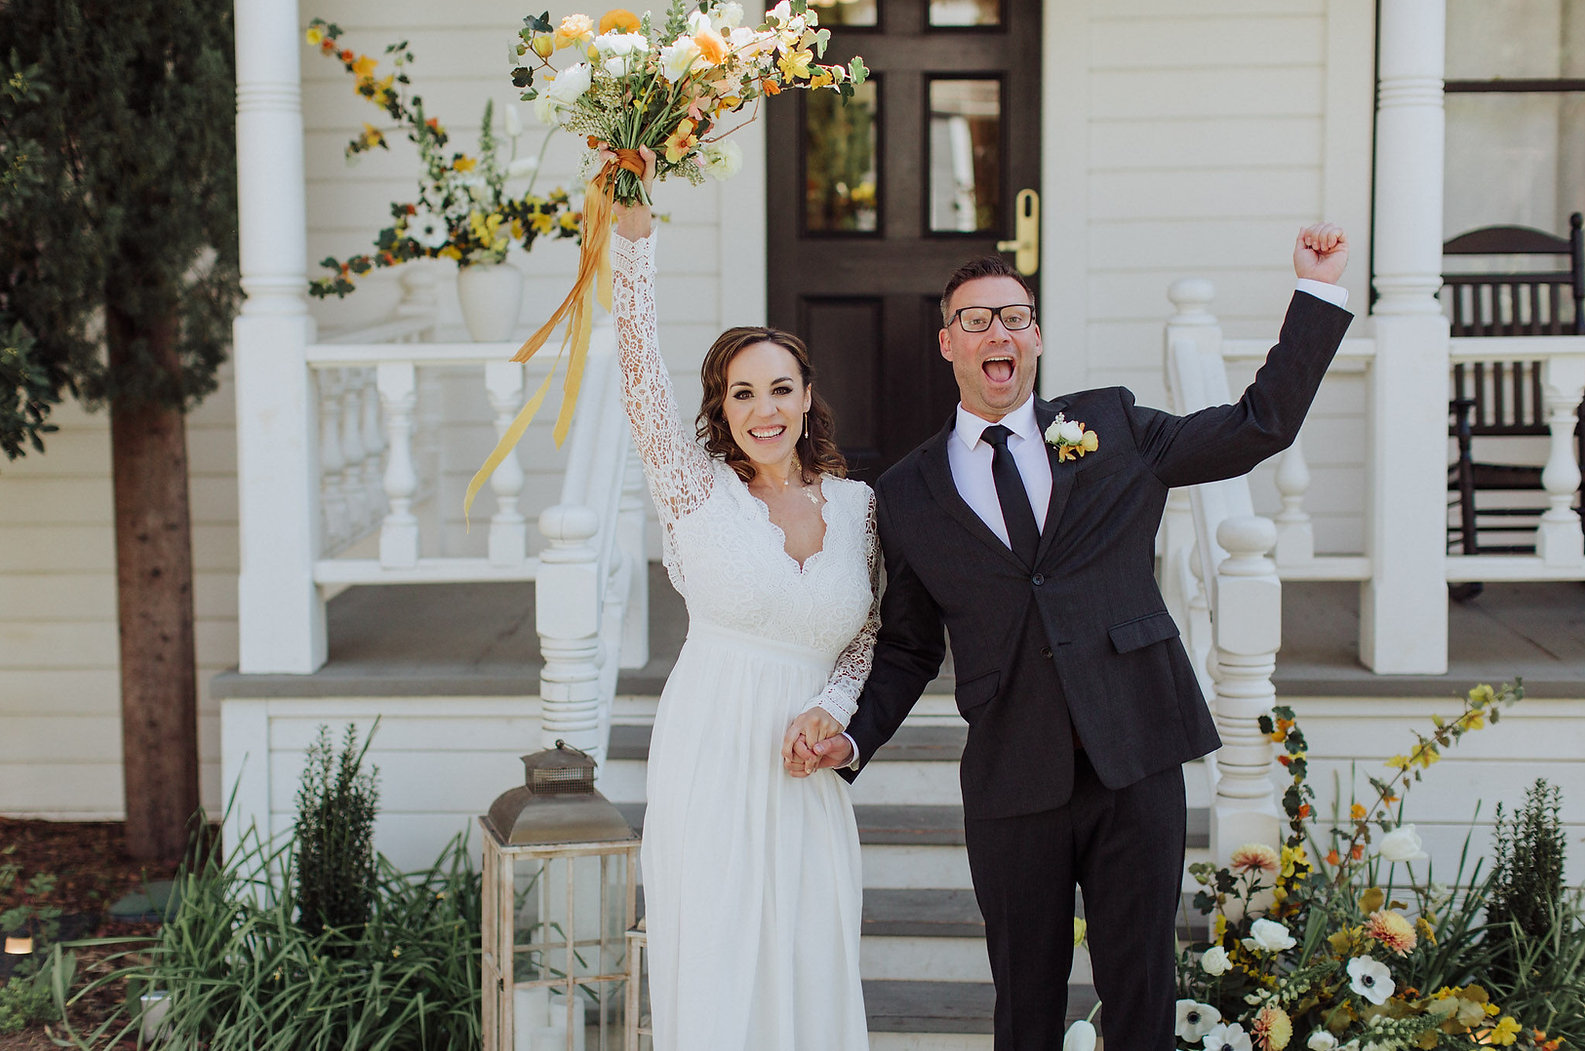 Wedding at the Holbrooke Hotel in Grass Valley